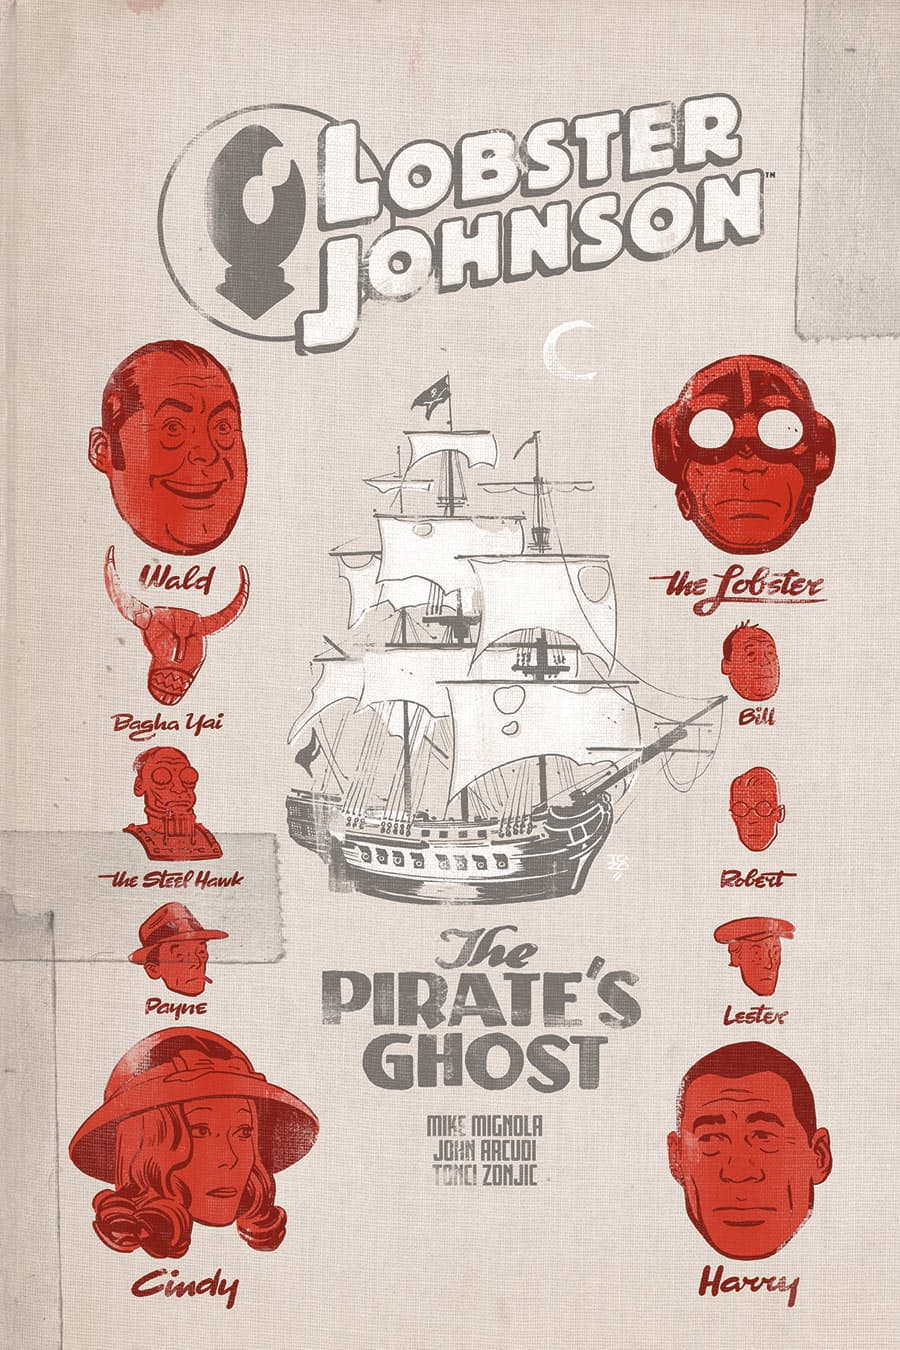 The Pirate's Ghost